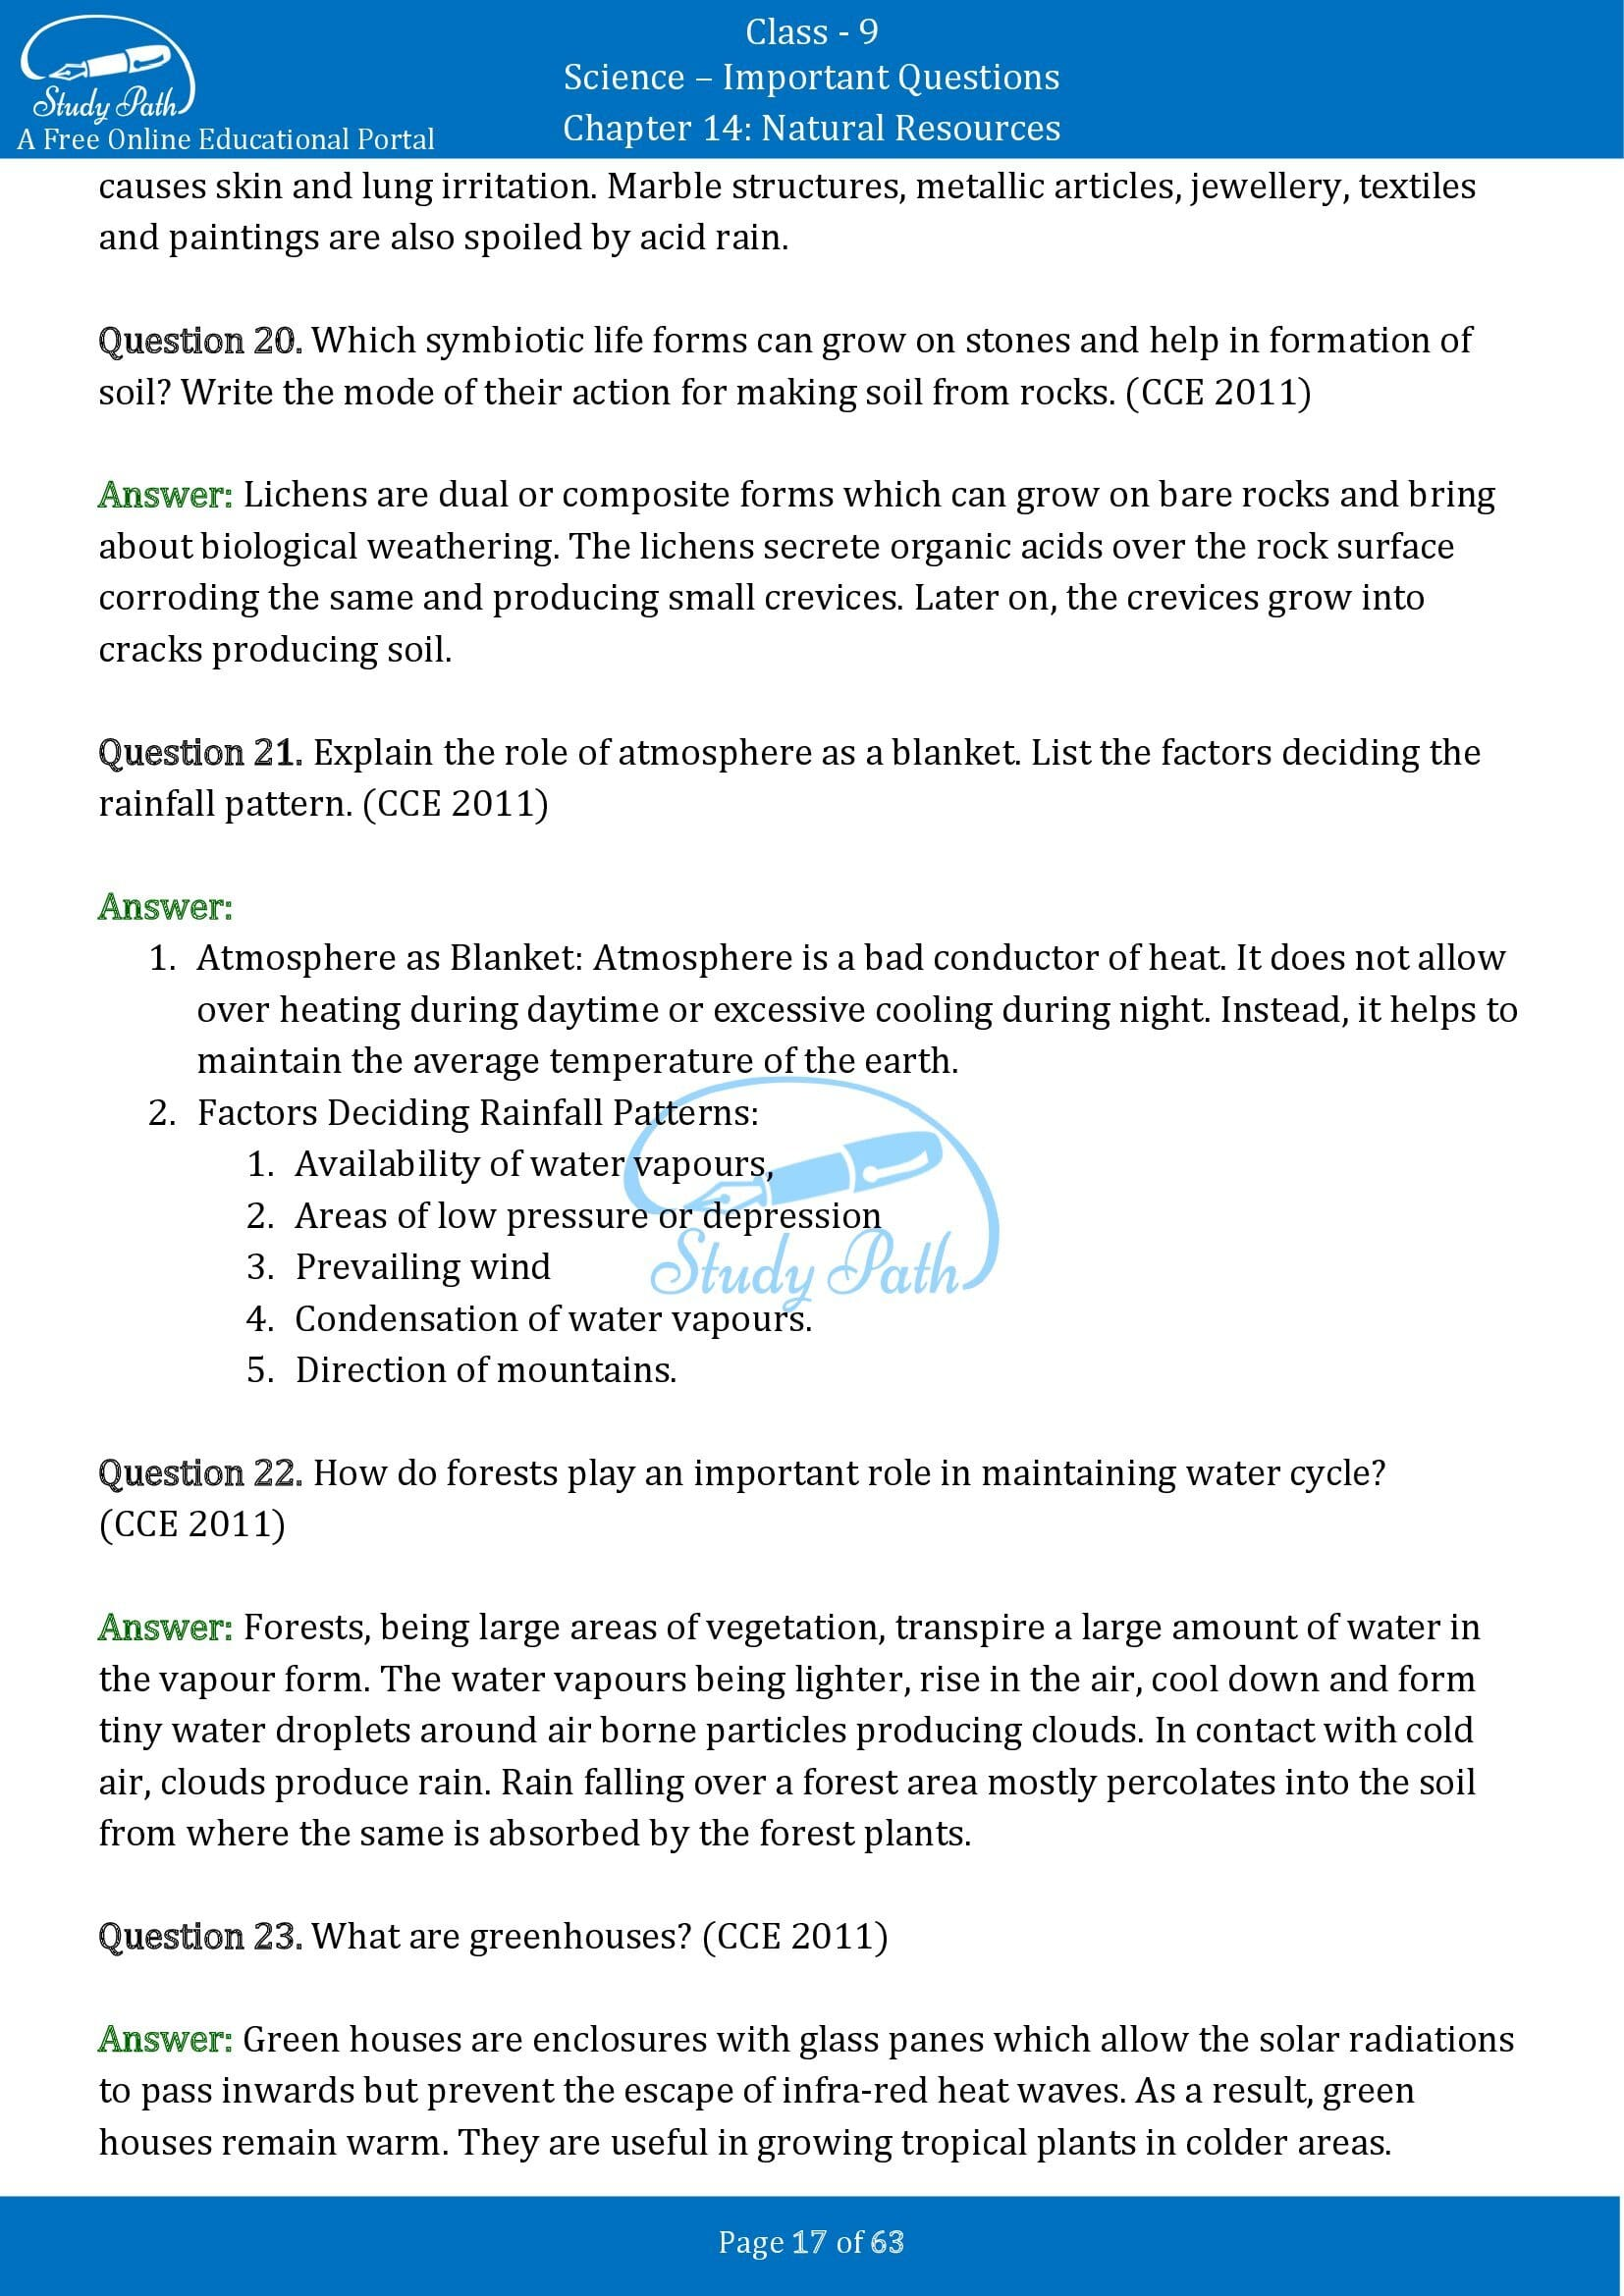 Important Questions for Class 9 Science Chapter 14 Natural Resources 00017